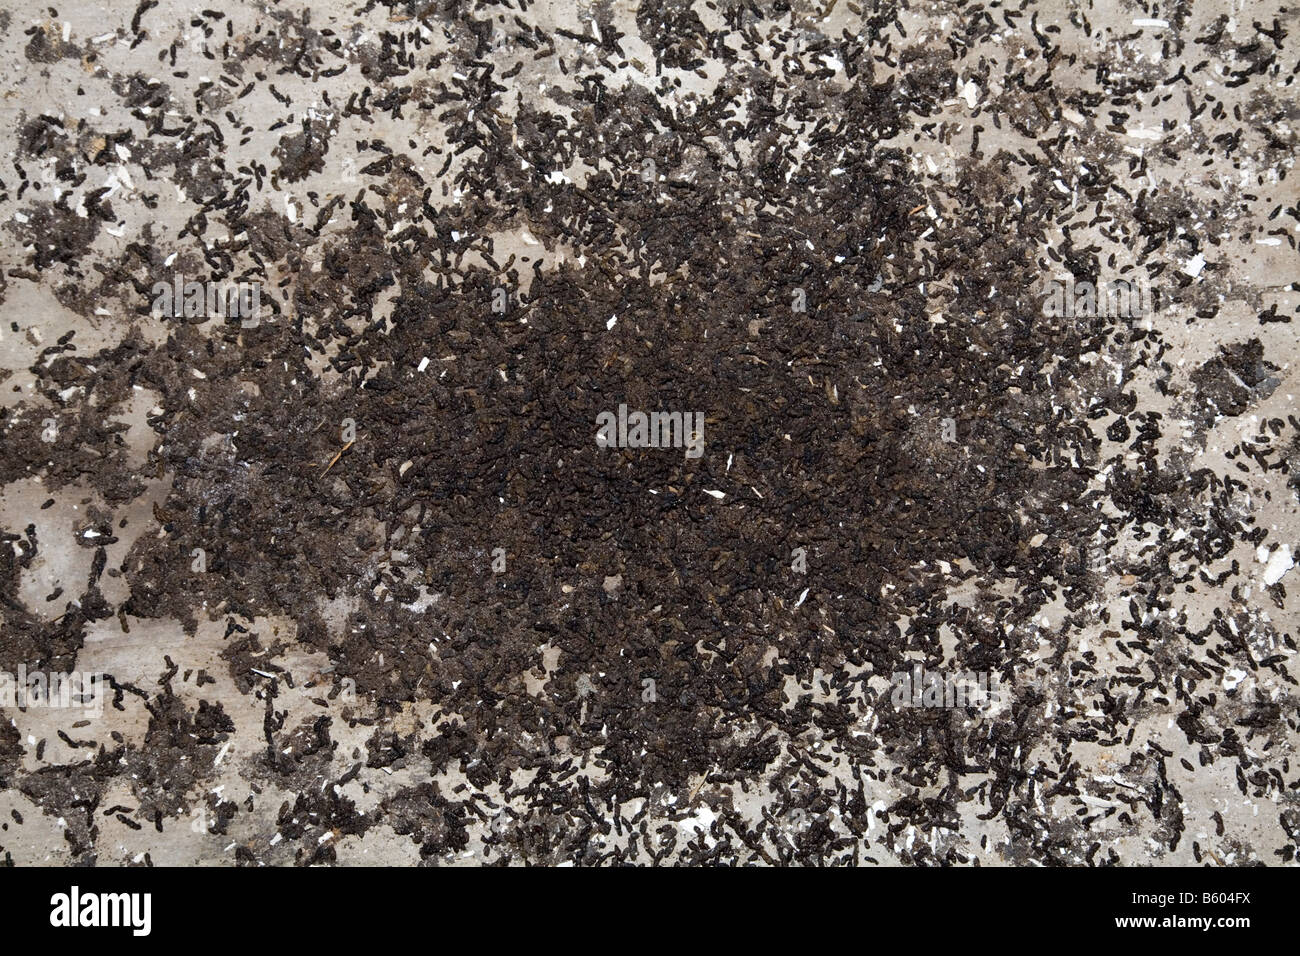 greater horseshoe bat droppings; creed cornwall - Stock Image